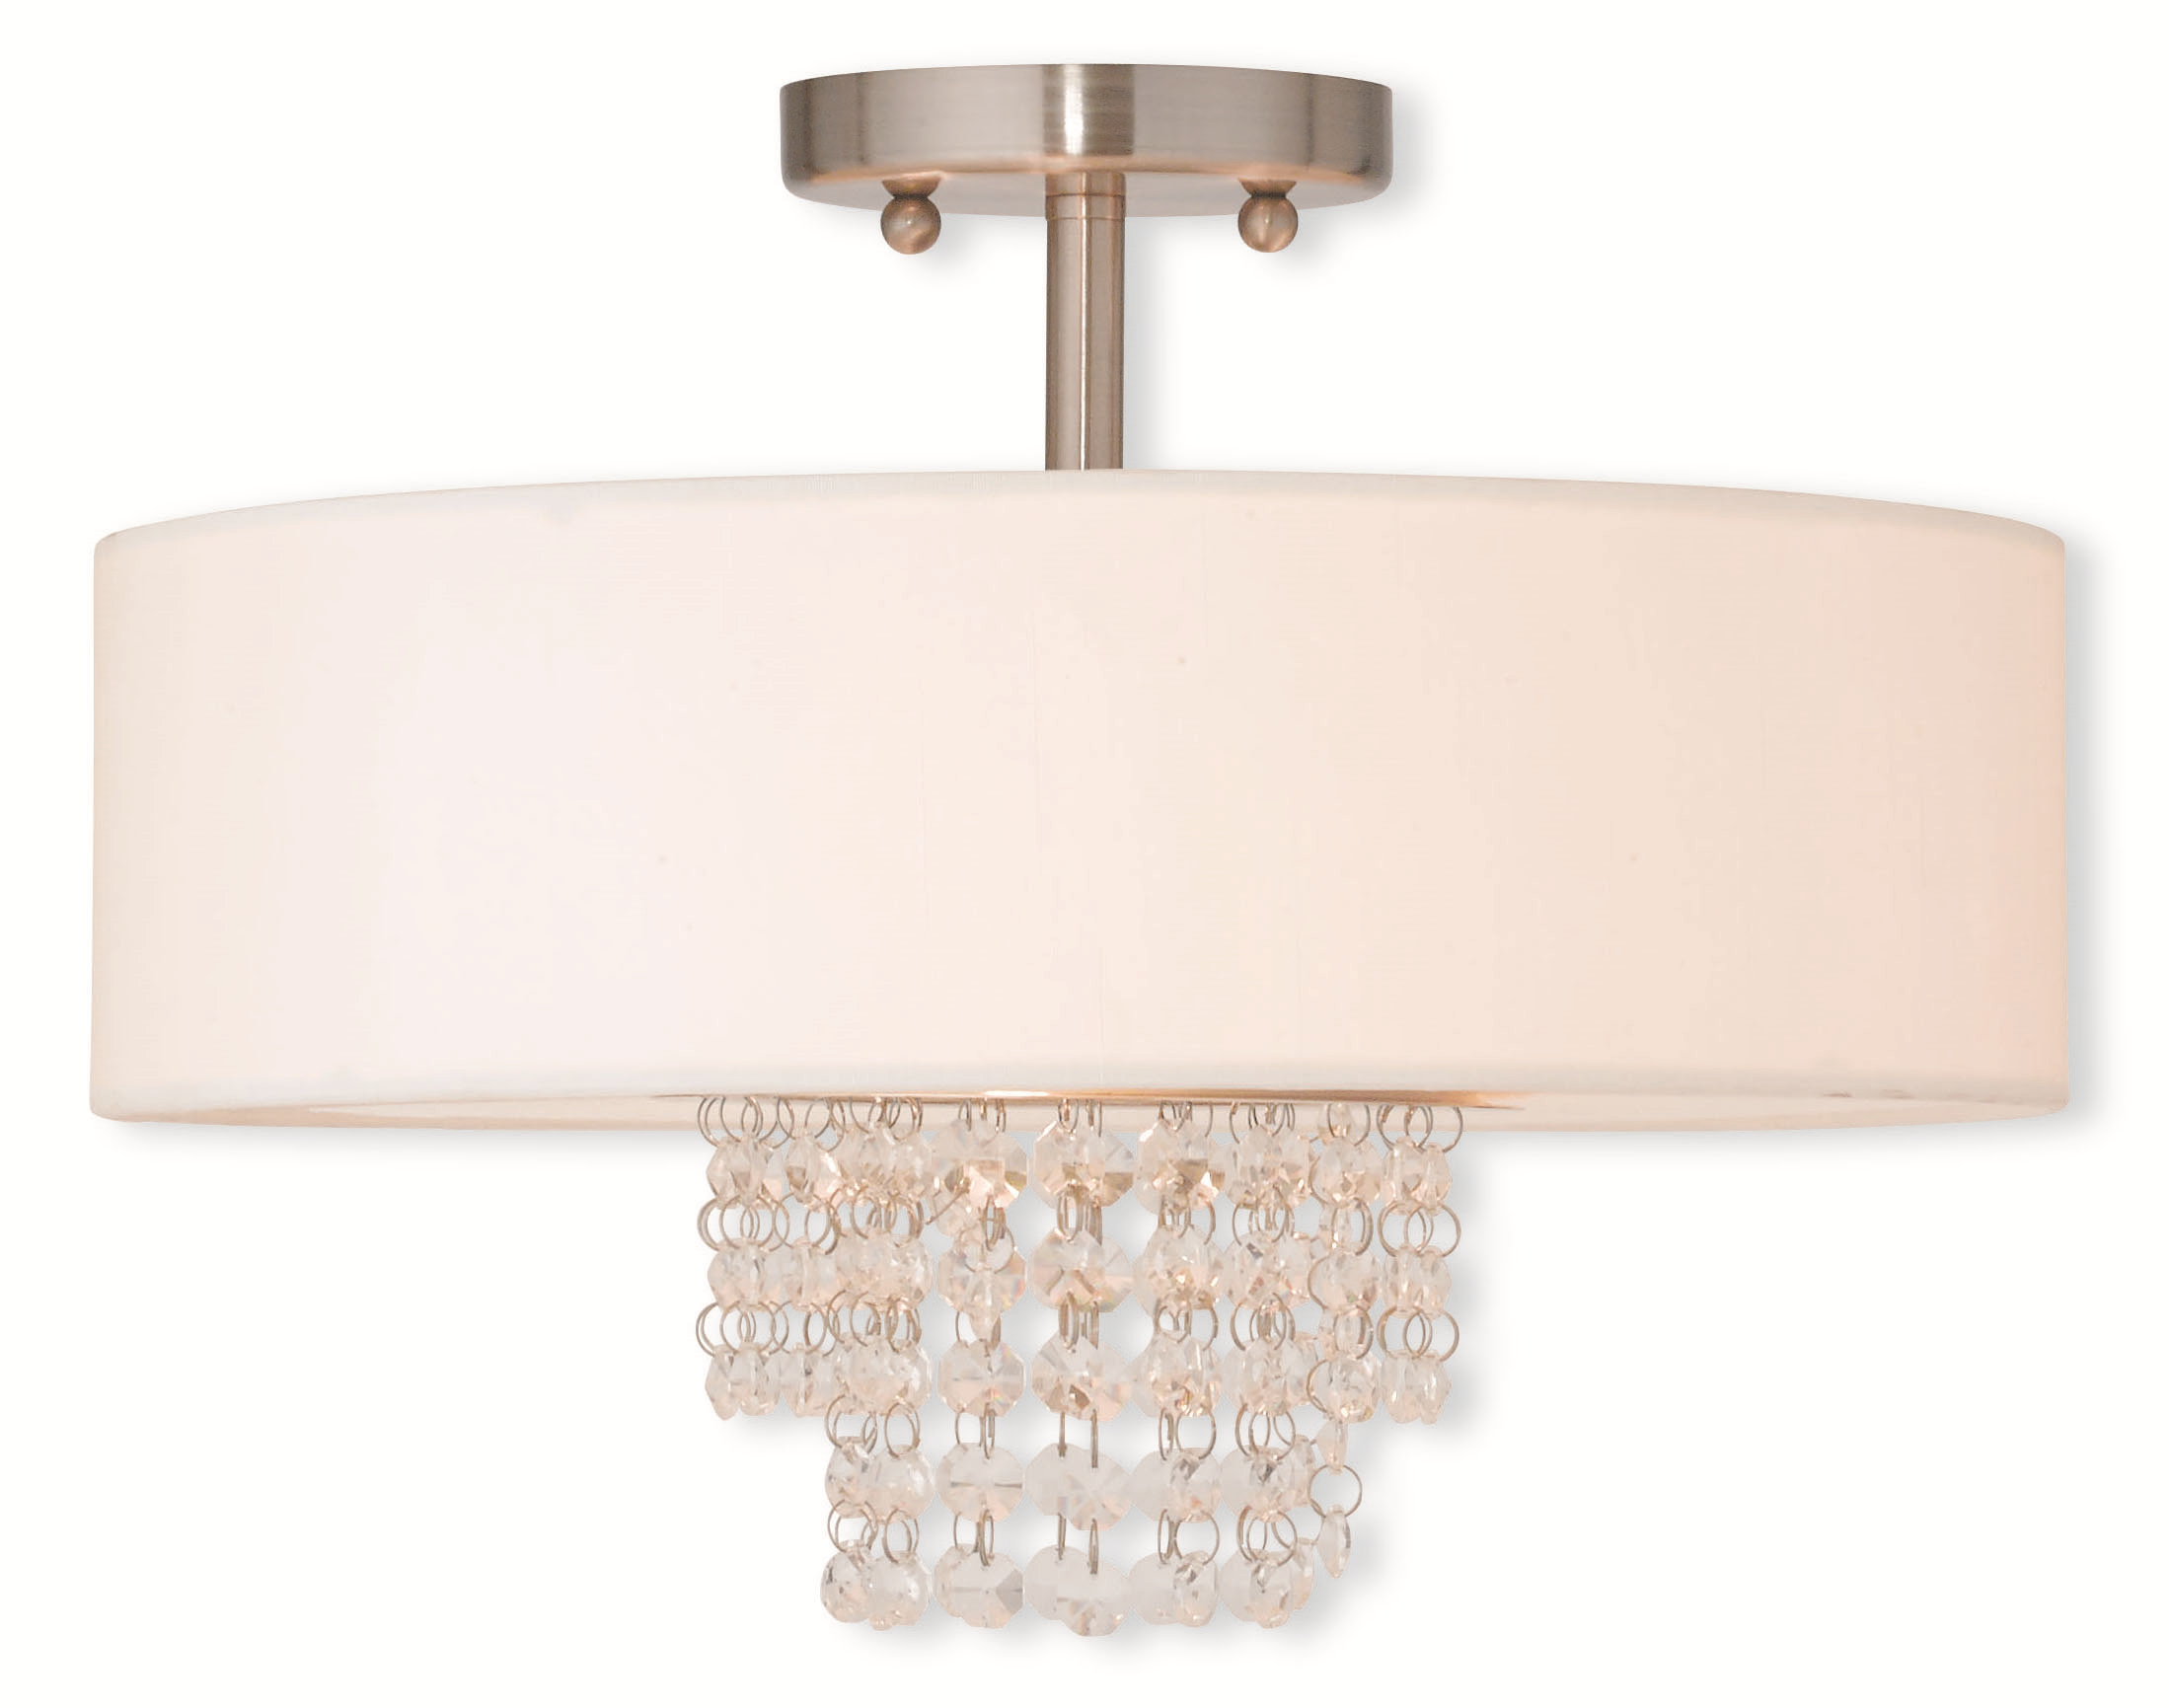 Charming Livex Lighting 51027 91 Flush Mount From The Carlisle Collection For Home Lighting Ideas